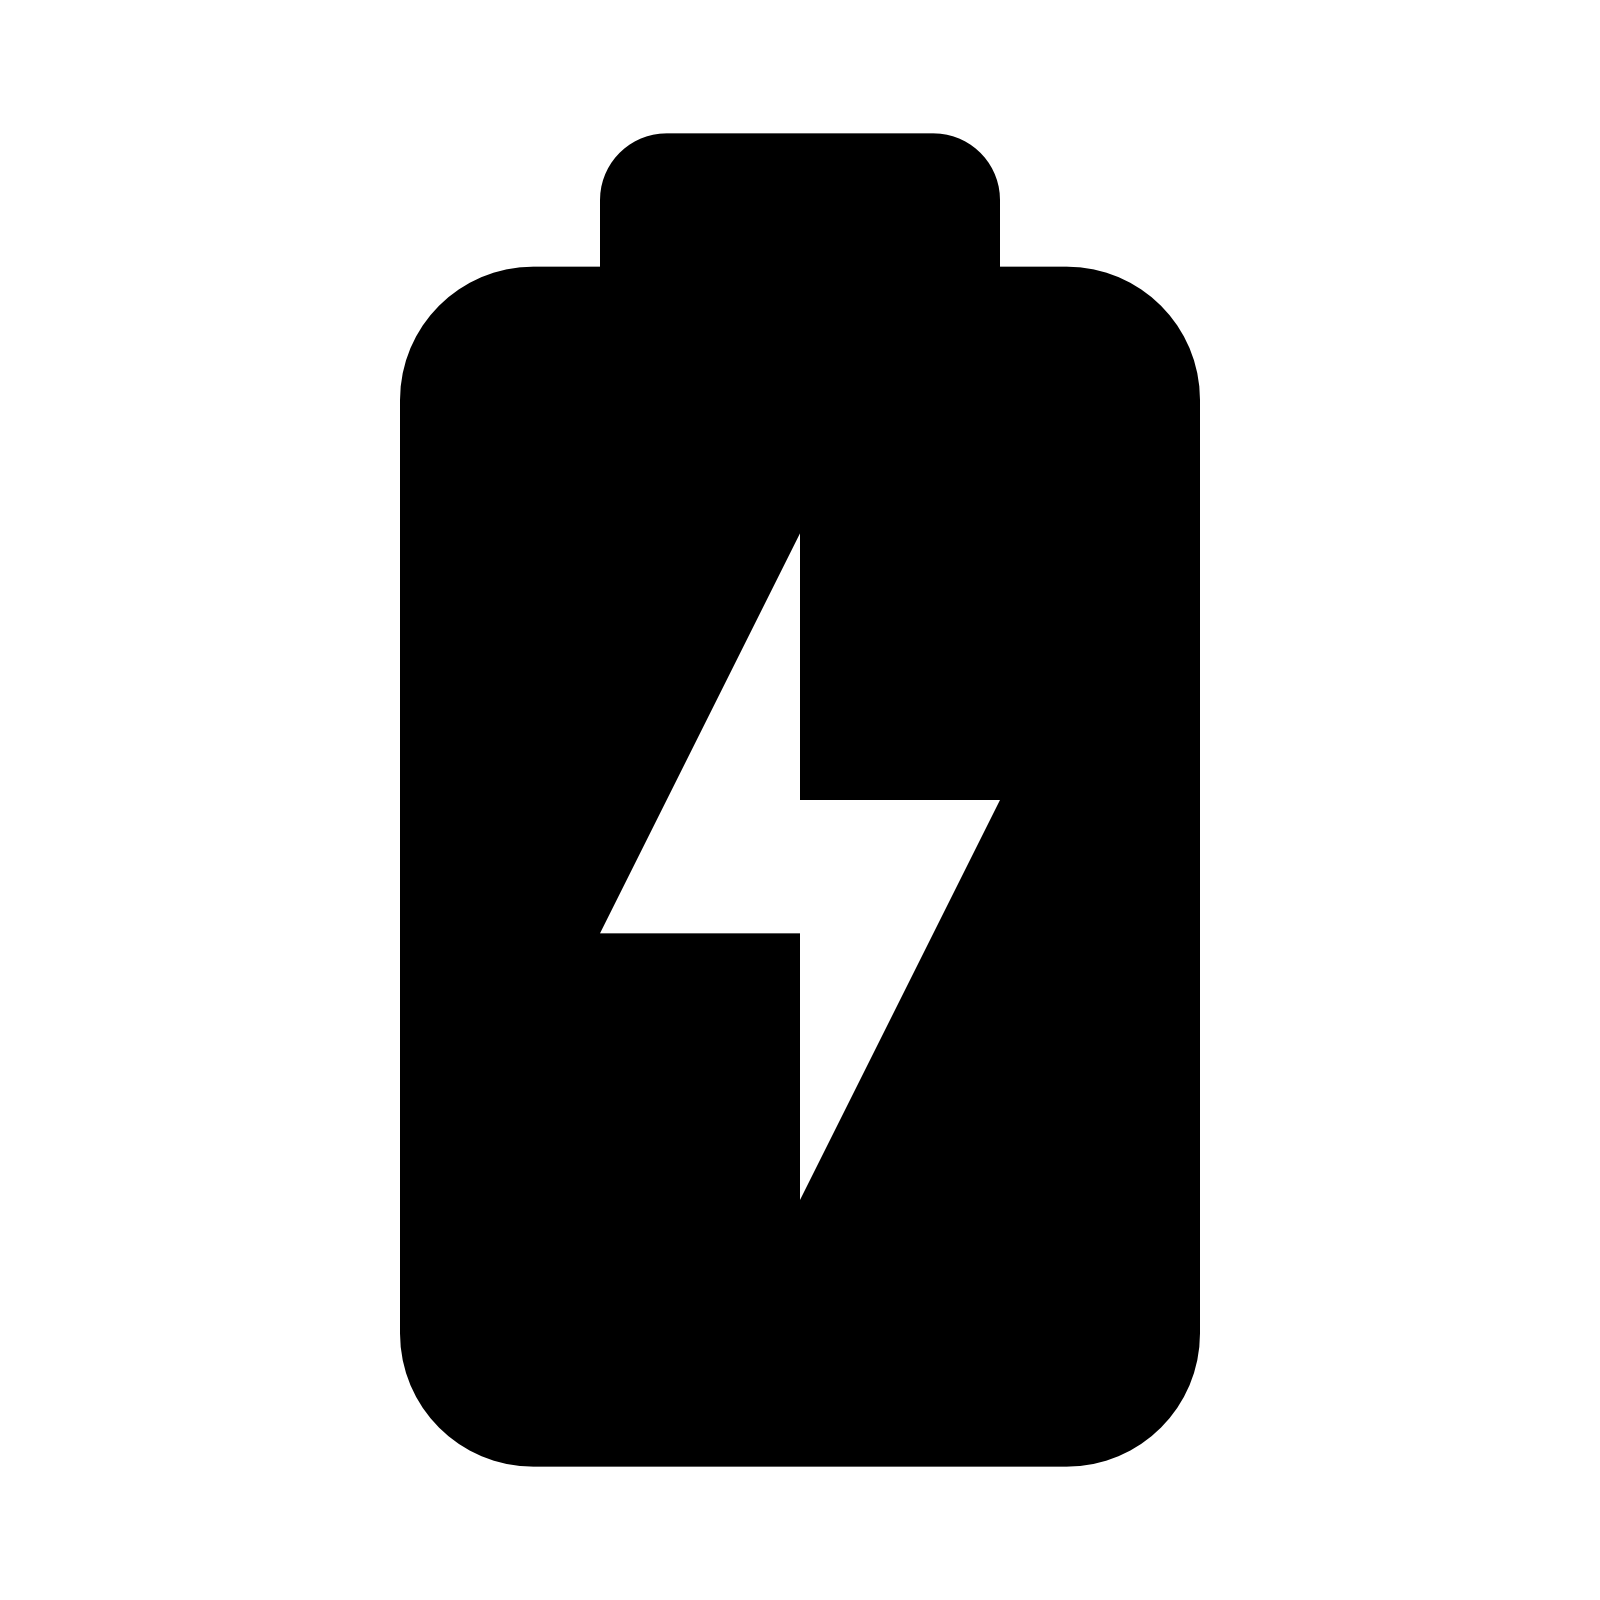 charging battery icon free download at icons8 clipart